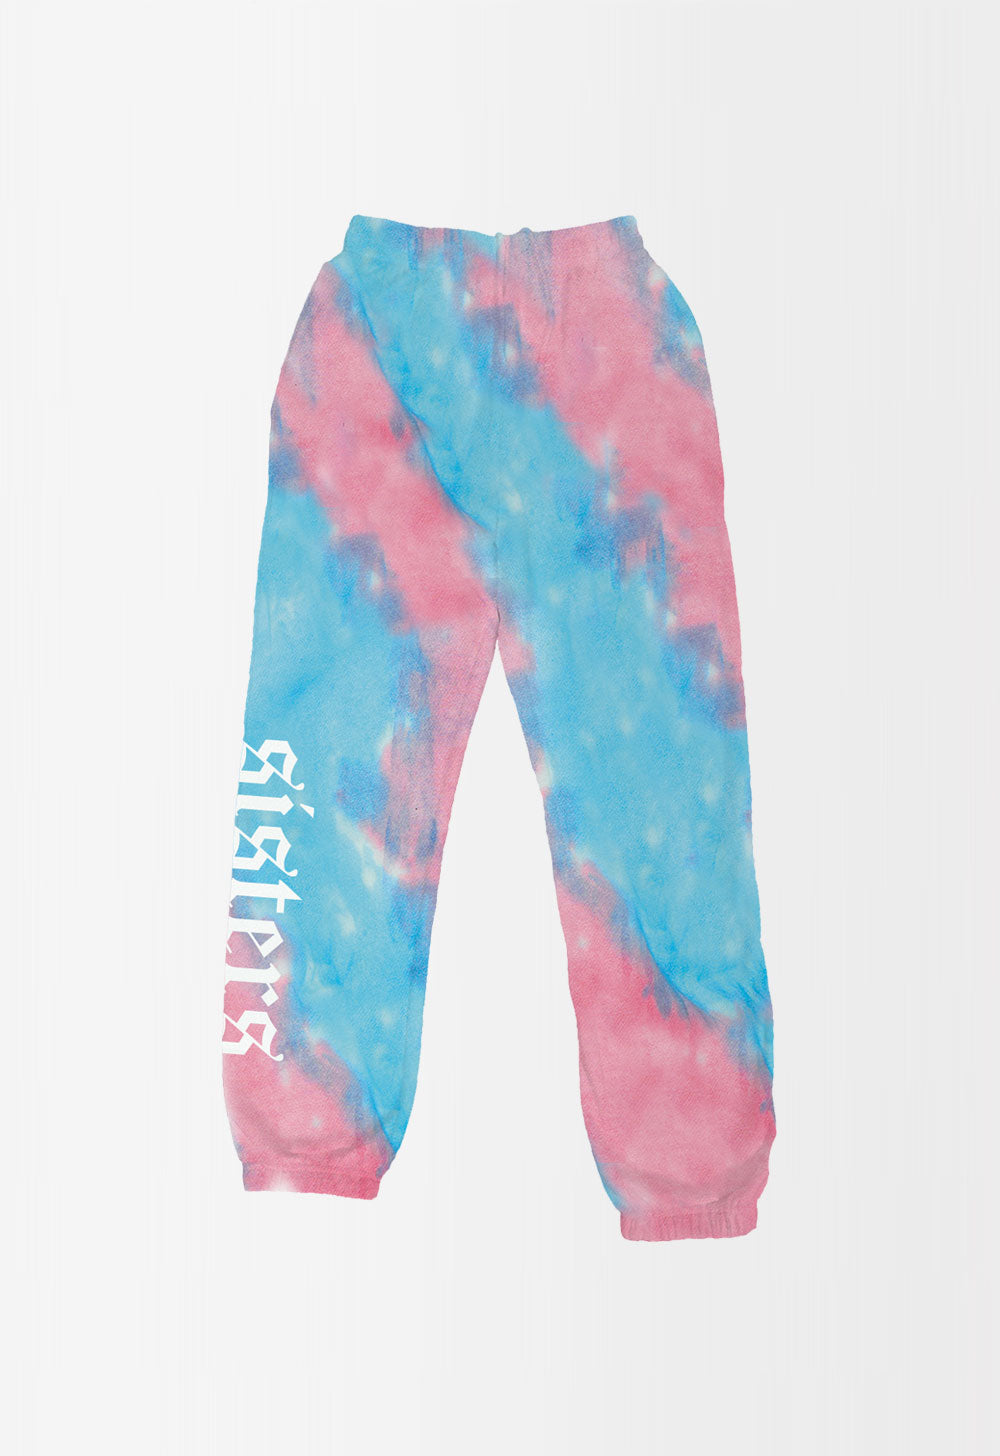 COTTON CANDY SWEATPANTS